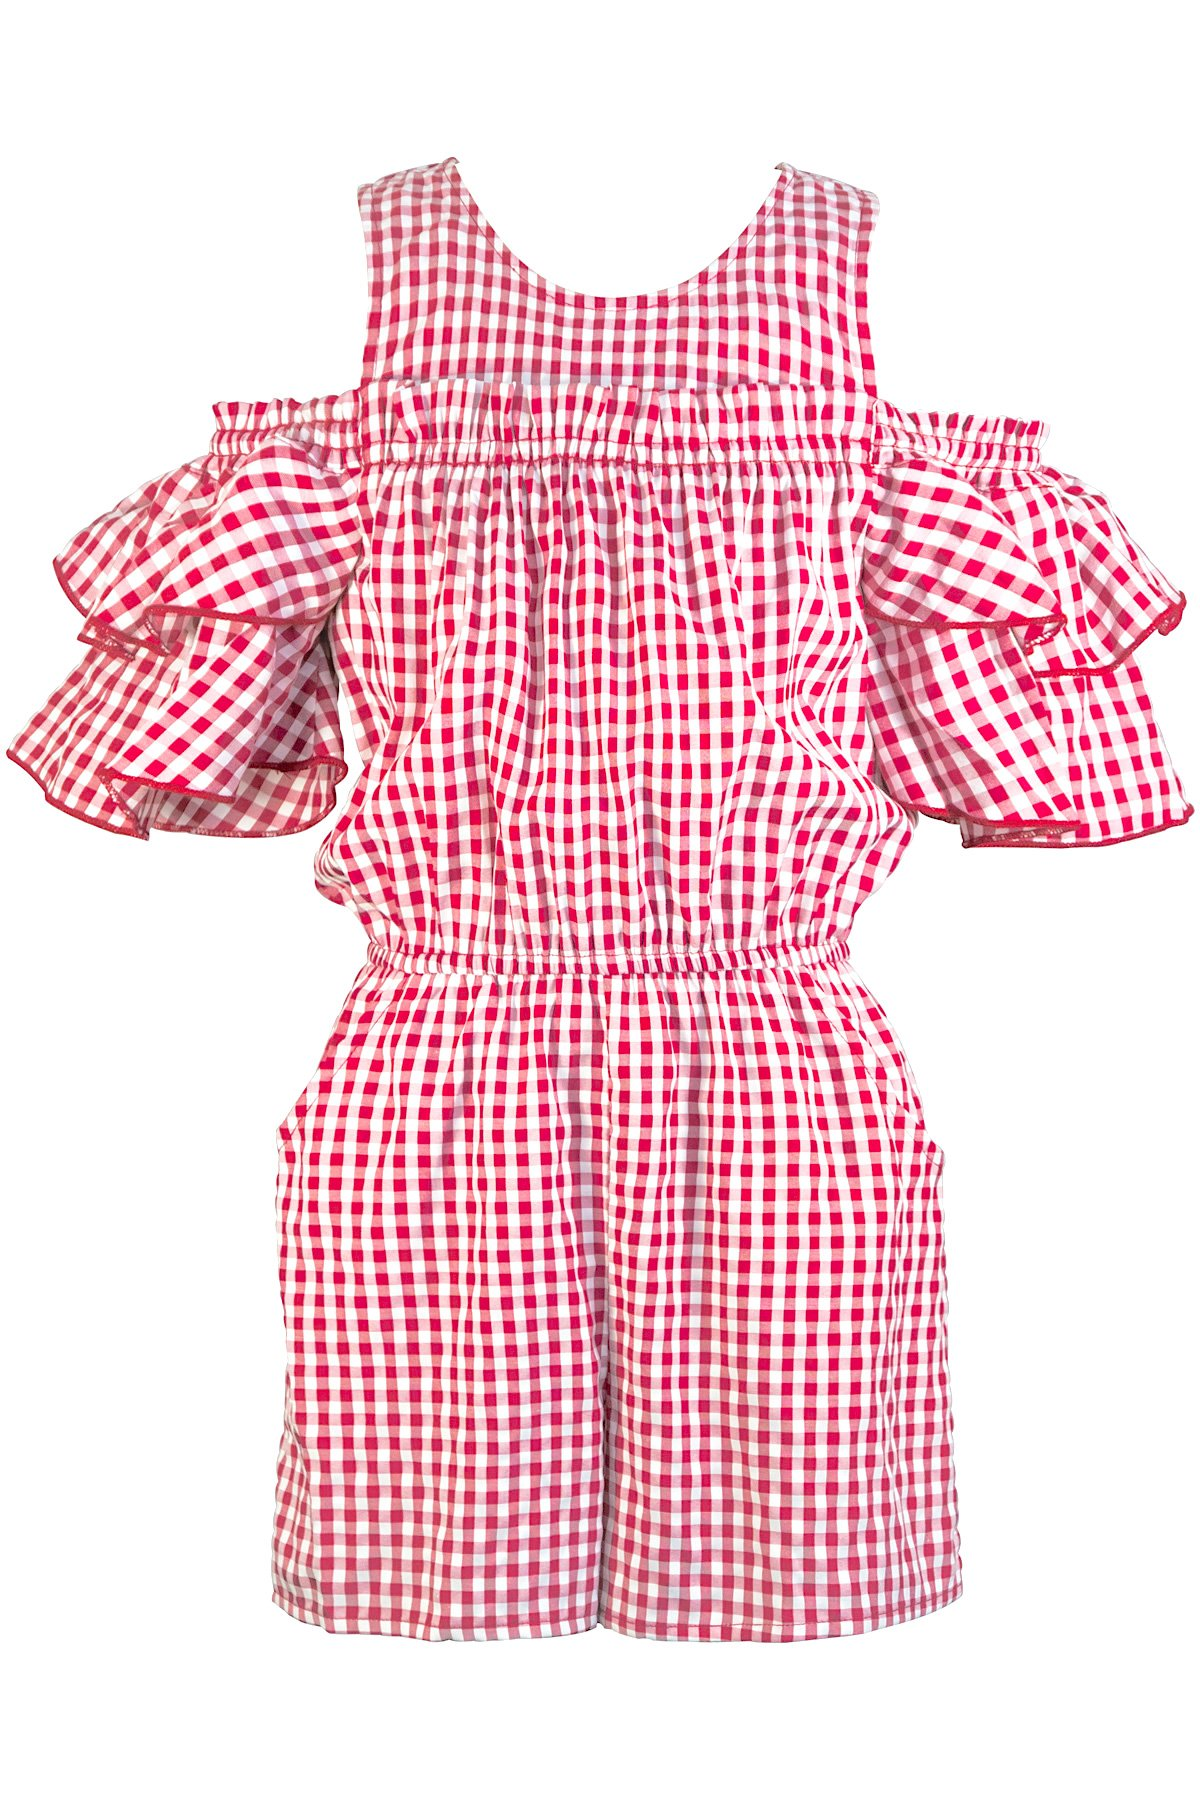 Hannah Banana Truly Me, Big Girls Tween Stunning Romper (Many Options), 7-16 (7, Red Multi)